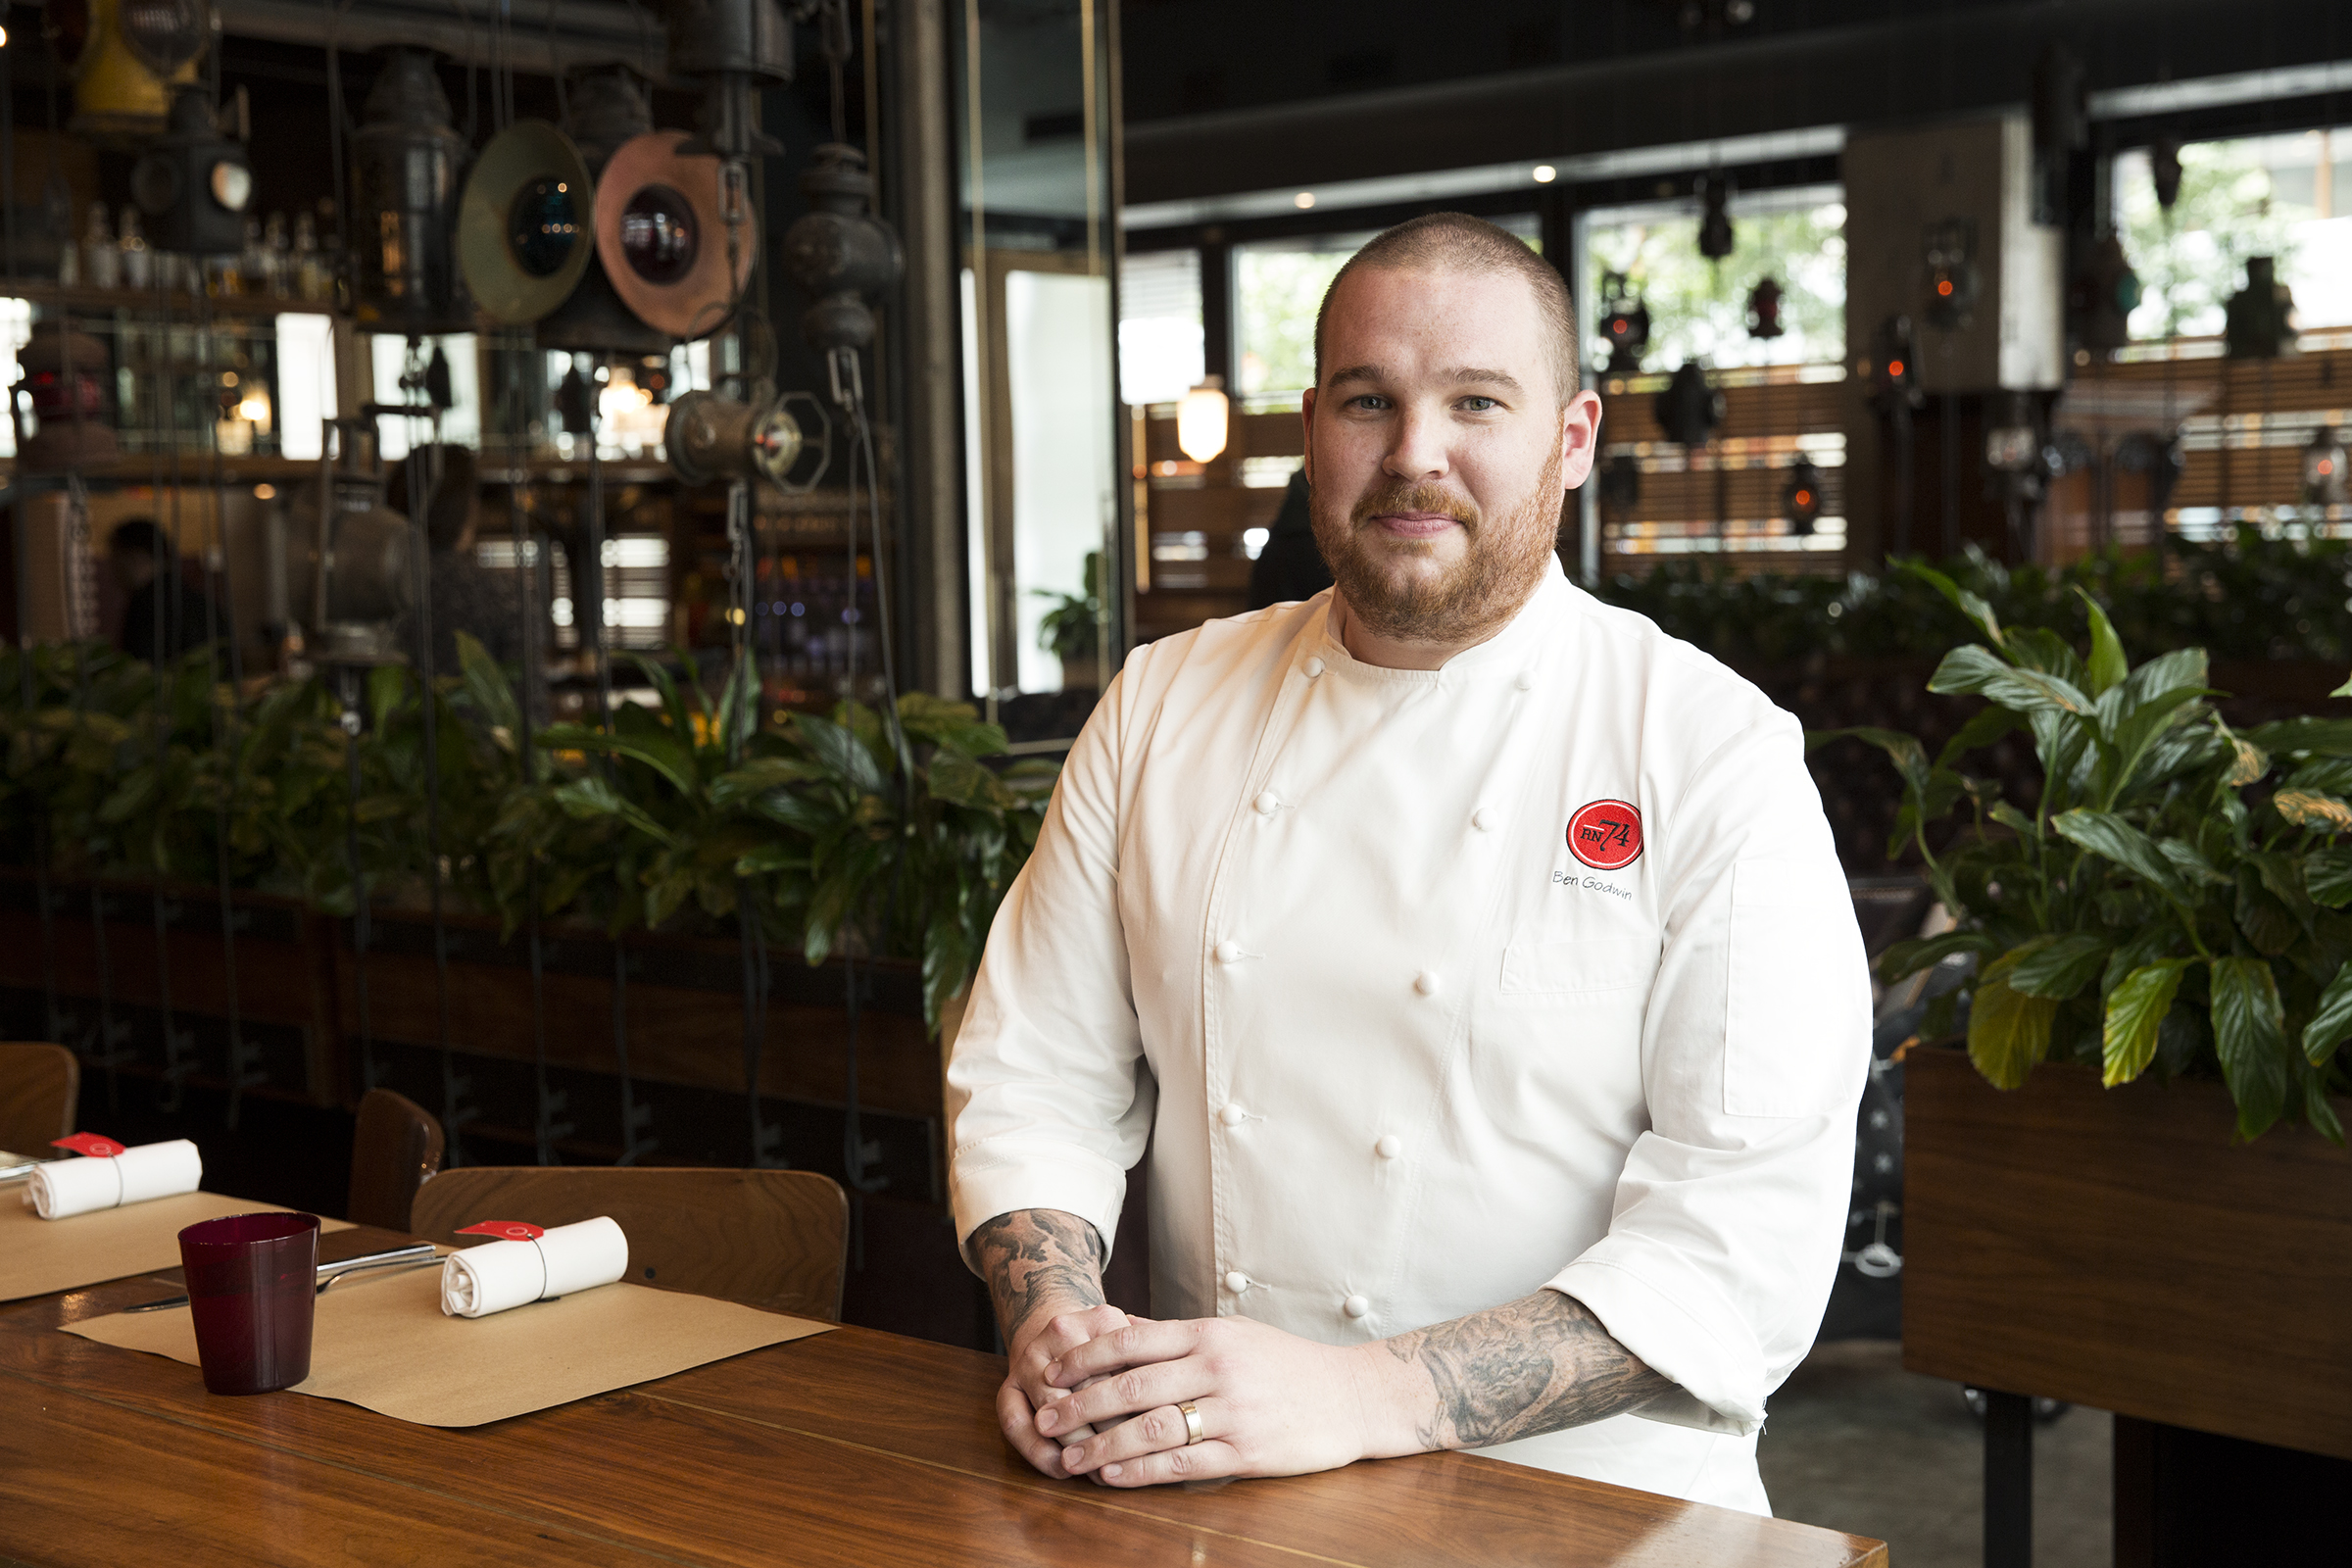 Rn74 Seattle Welcomes New Executive Chef Ben Godwin